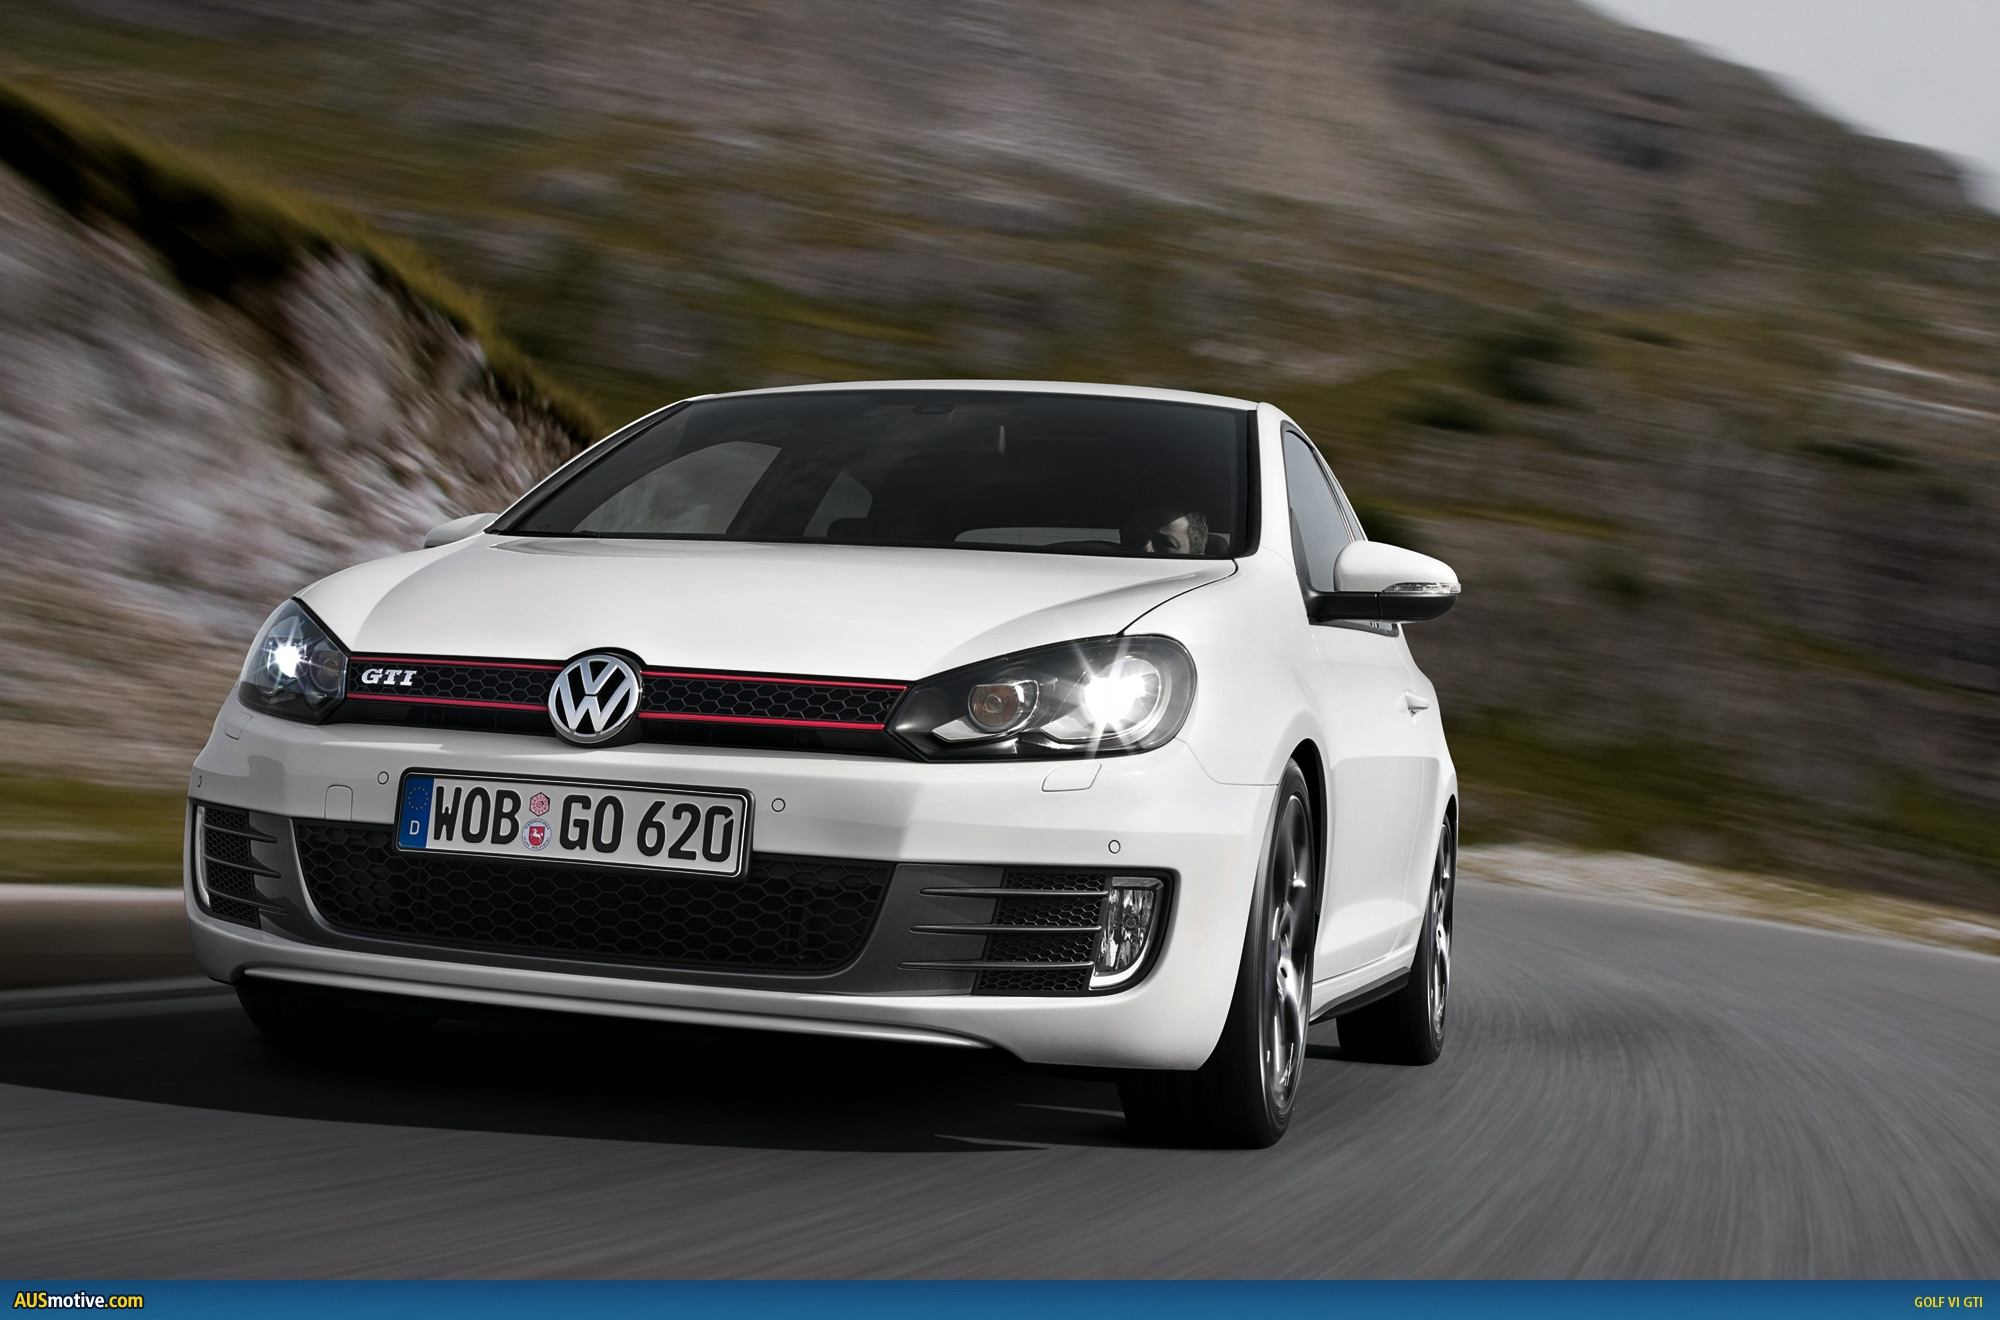 volkswagen golf gti desktop wallpaper